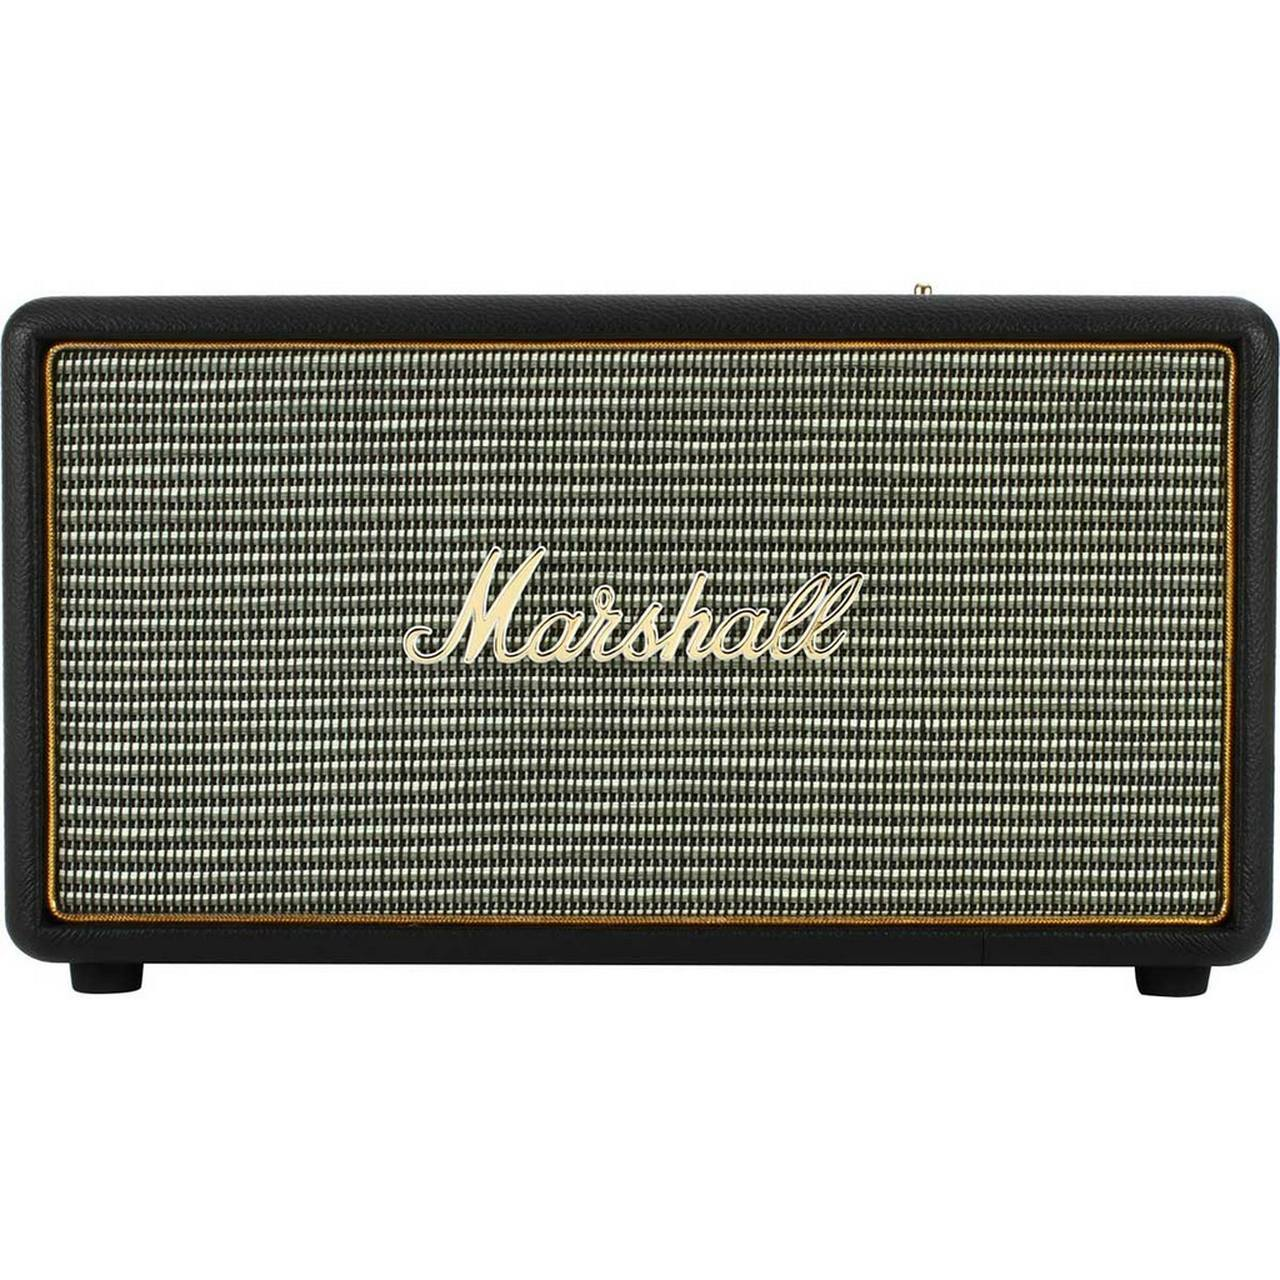 Caixa de Som Marshall Stanmore Wireless Bluetooth Black